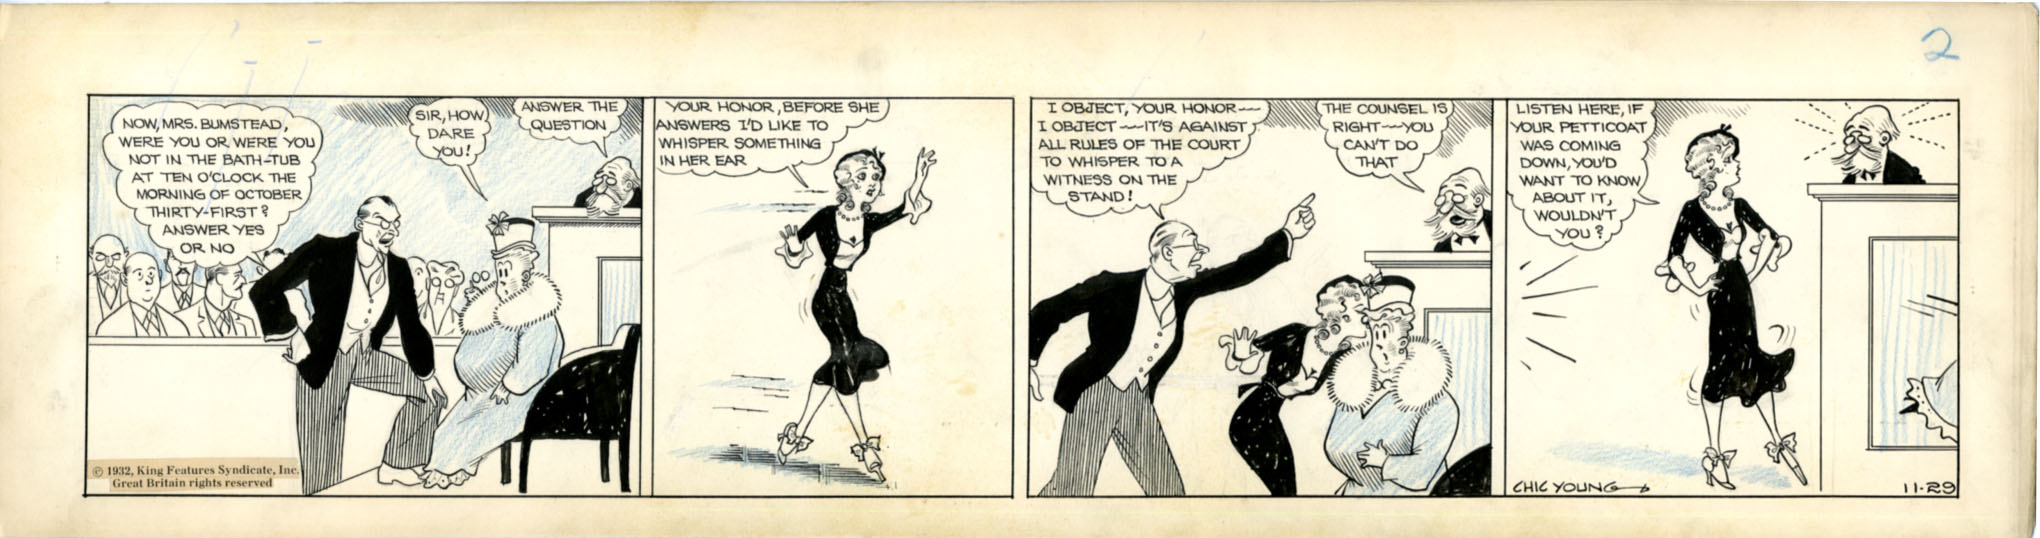 CHIC YOUNG - BLONDIE DAILY COMIC STRIP ORIG ART 11-29-32 / WHISPER TO A WITNESS